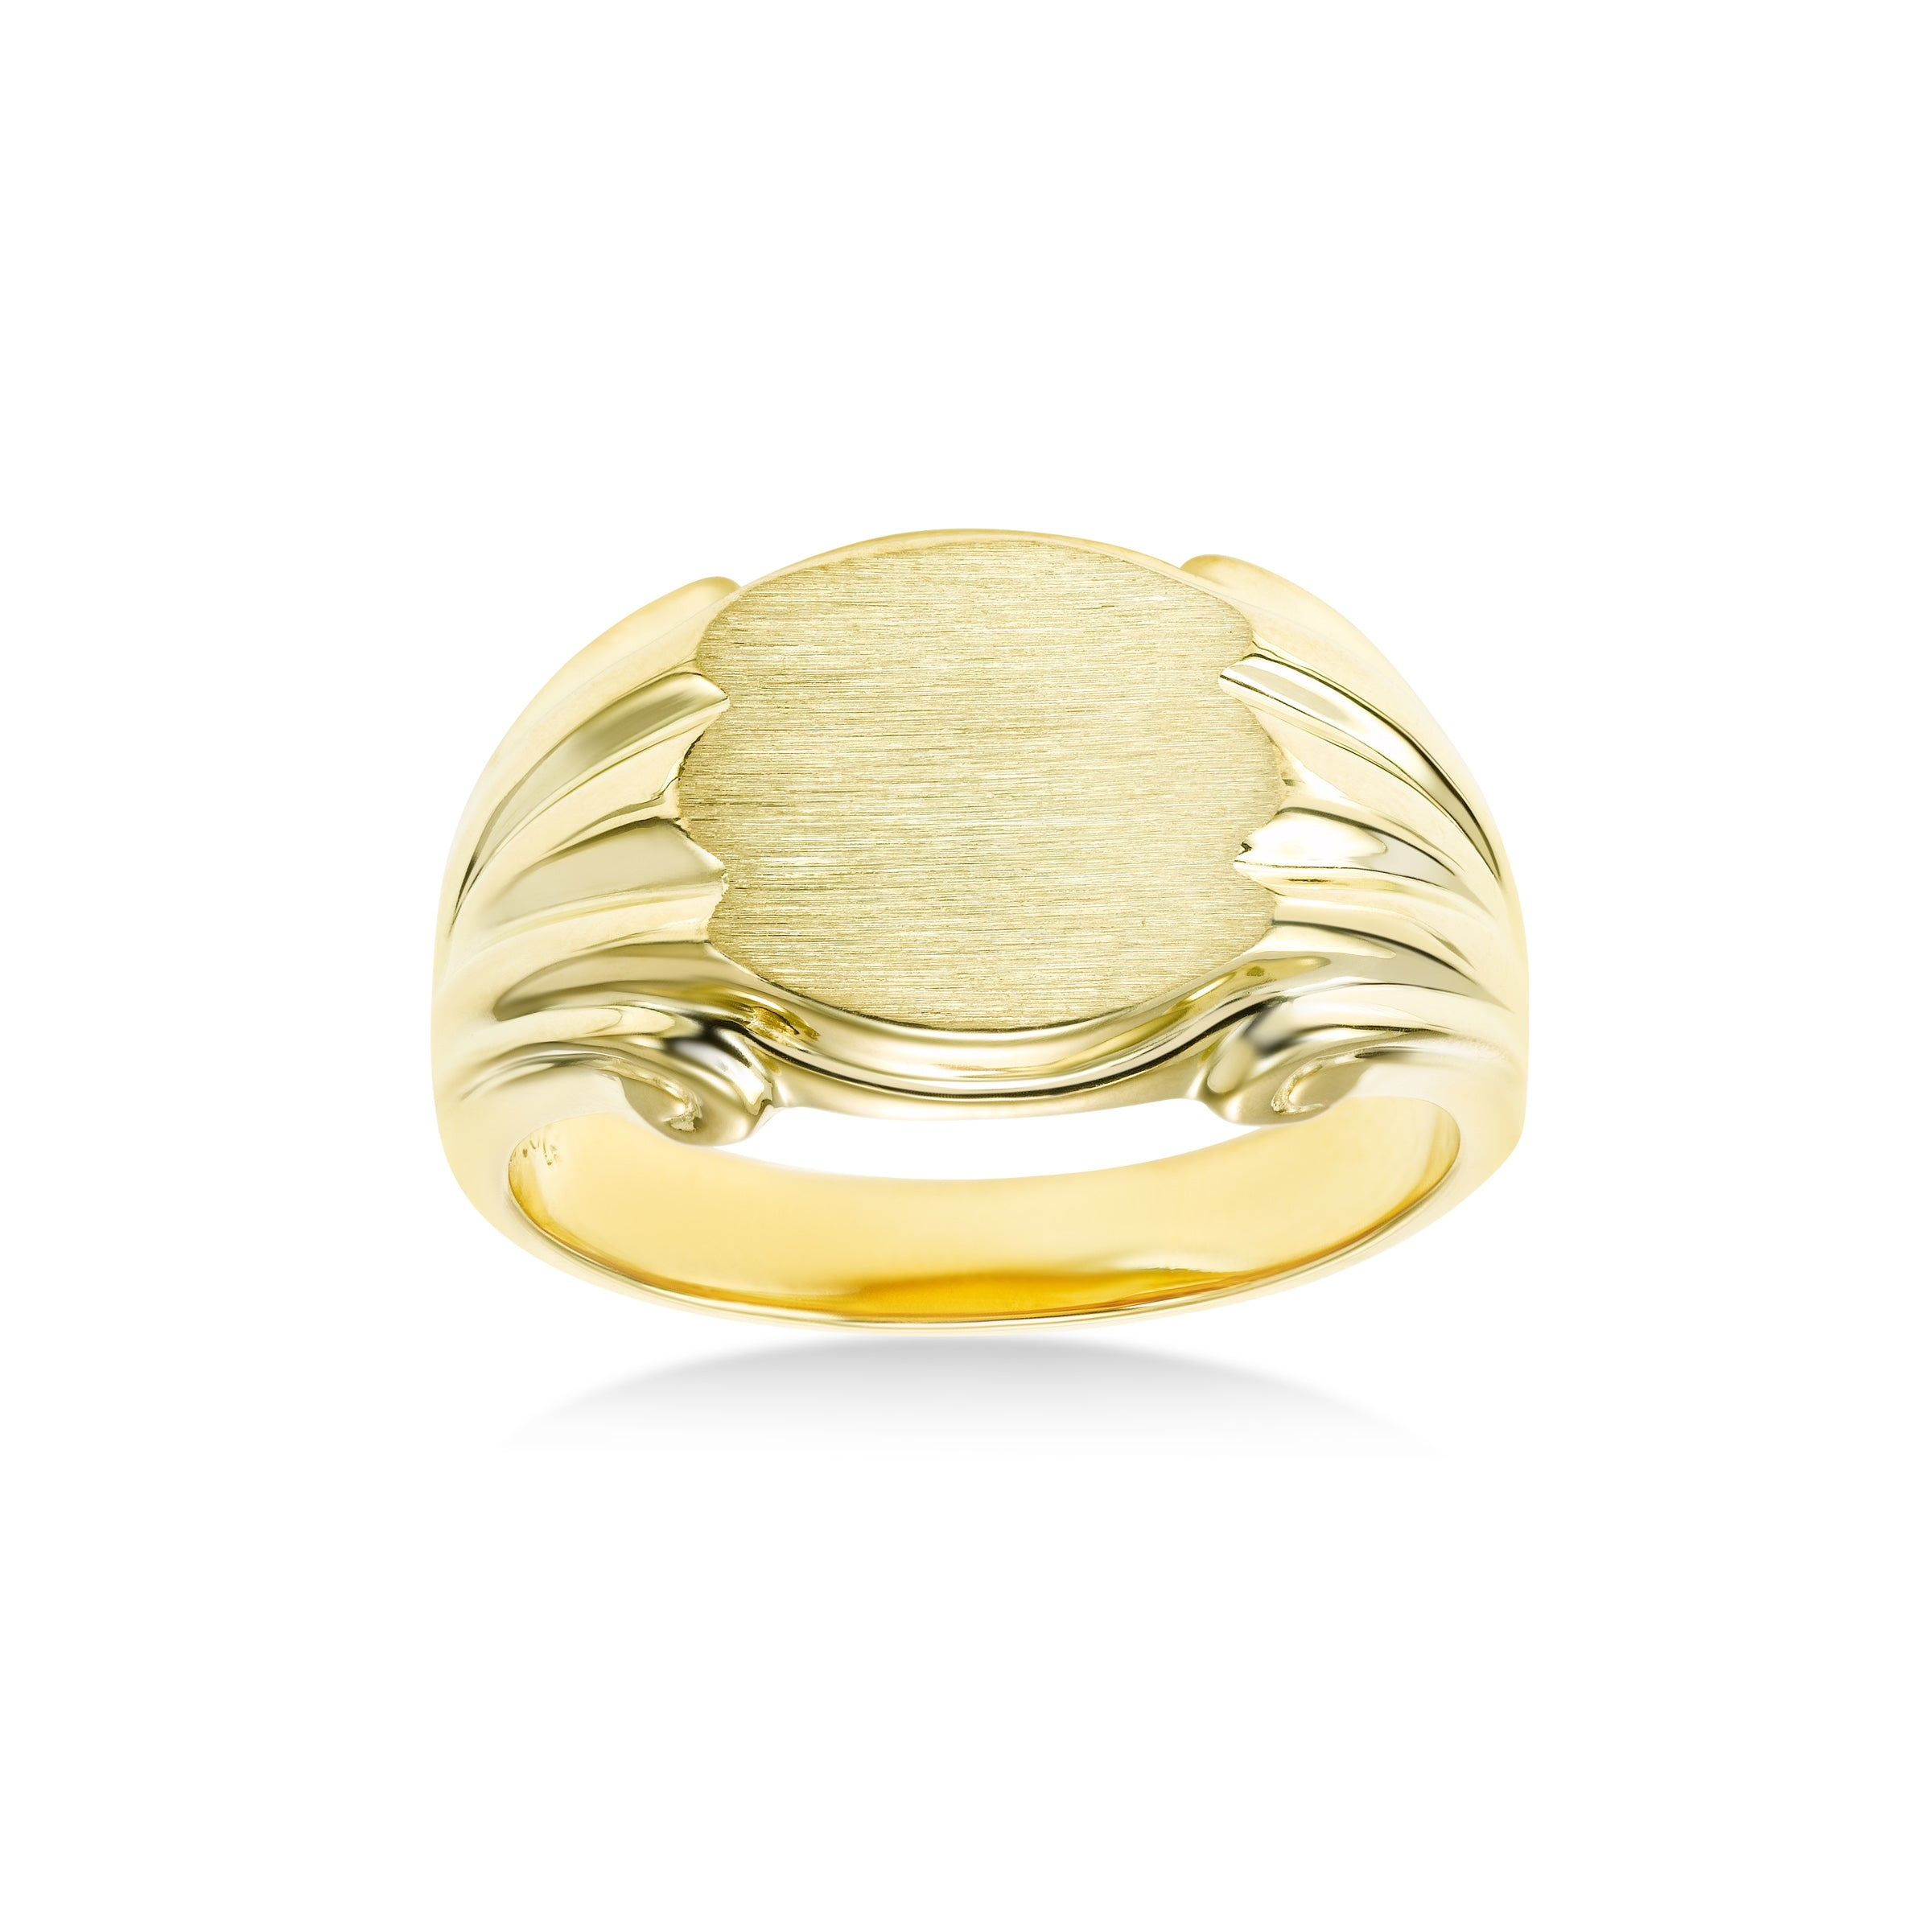 Engravable Signet Ring, 14K Yellow Gold Plated